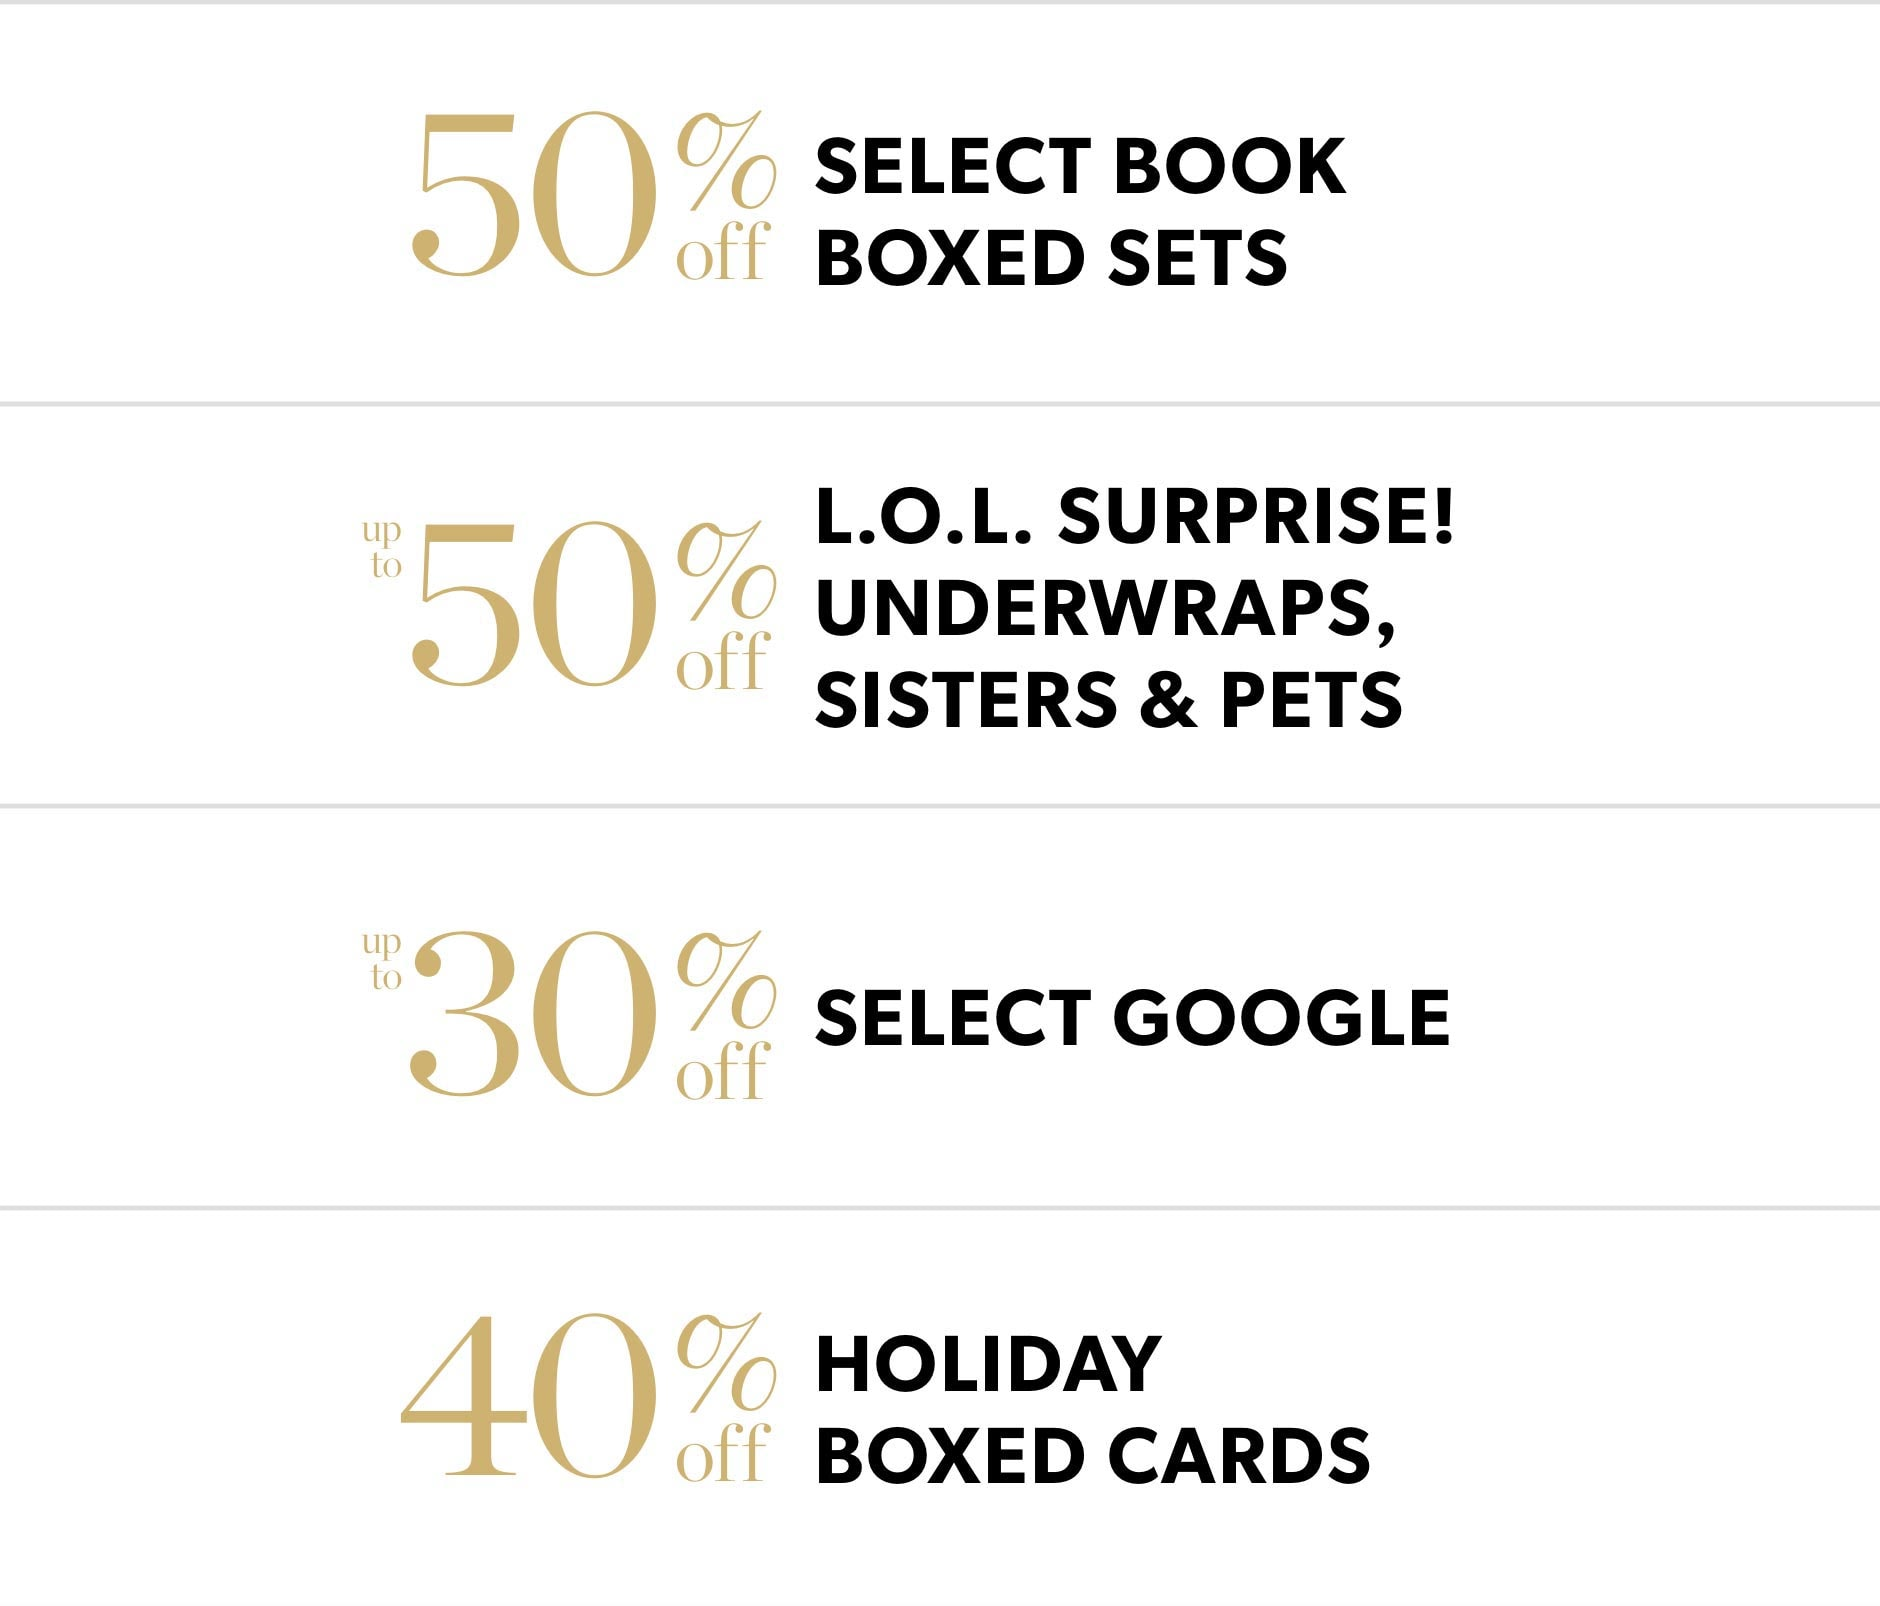 Black Friday In-Store Only: 50% off select book boxed sets, 50% L.O.L. Surprise! underwtaps, sisters and pets, 30% off select Google & 40% holiday boxed cards